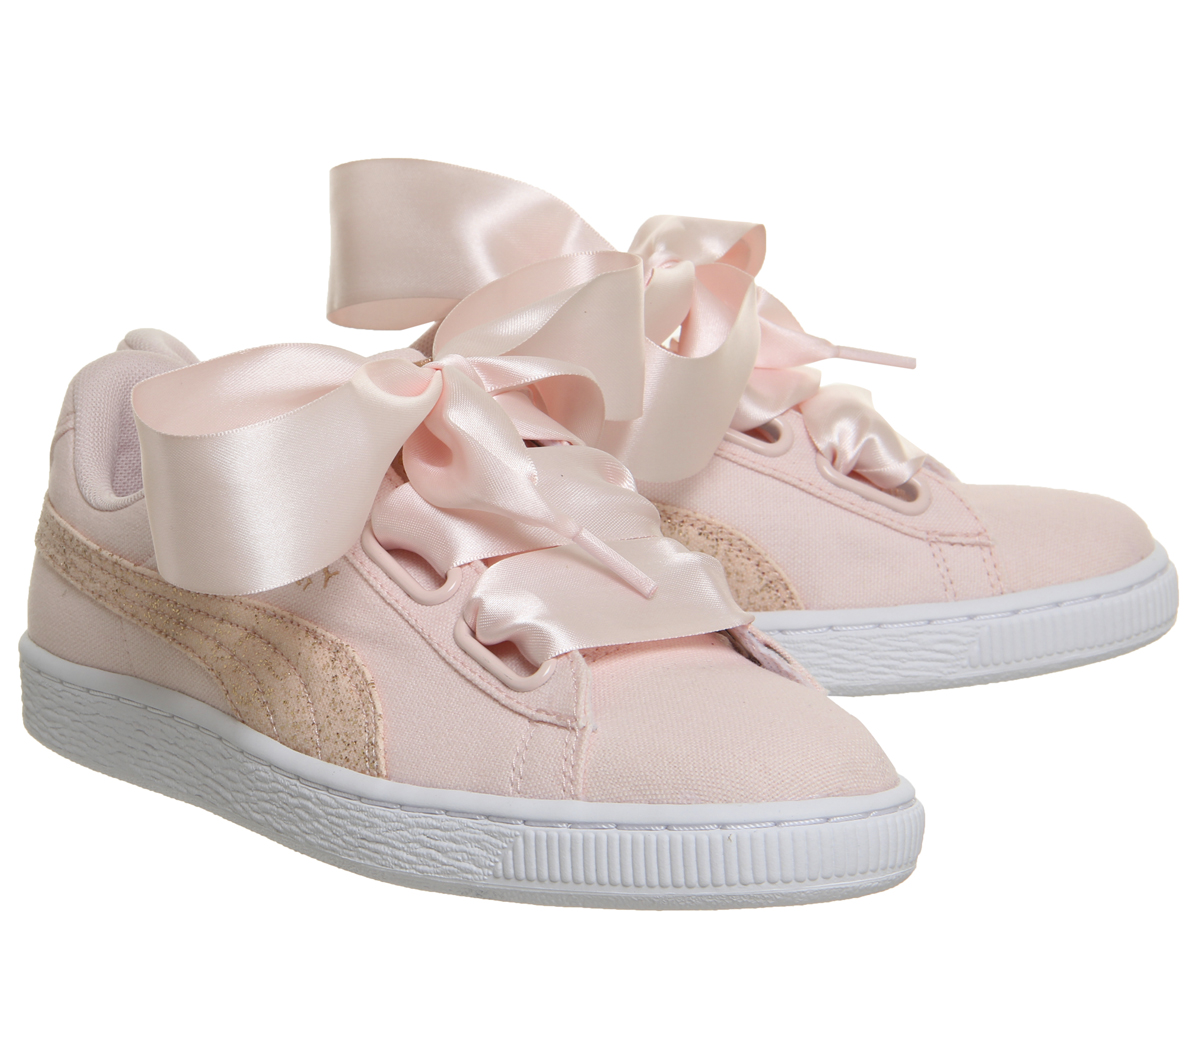 145e9b4816fa33 Womens Puma Basket Heart Canvas Trainers Pearl Puma White Rose Gold ...